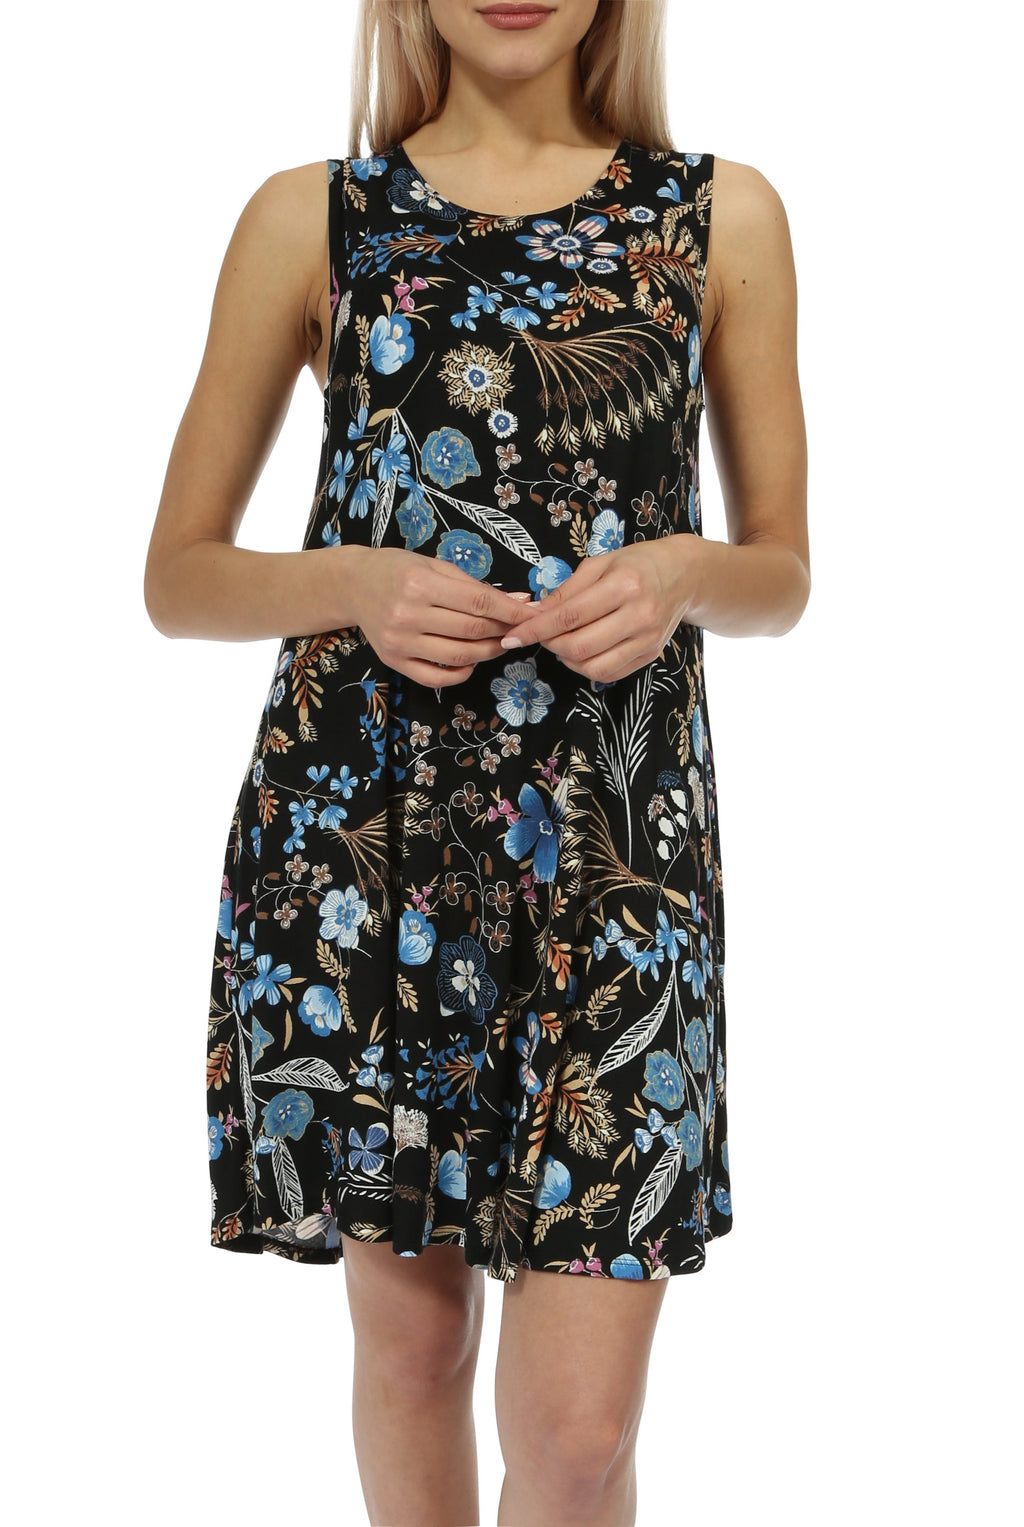 Teeze Me | Sleeveless Scoop Neck Floral Print Swing Dress | Black | Teeze Me Juniors Apparel